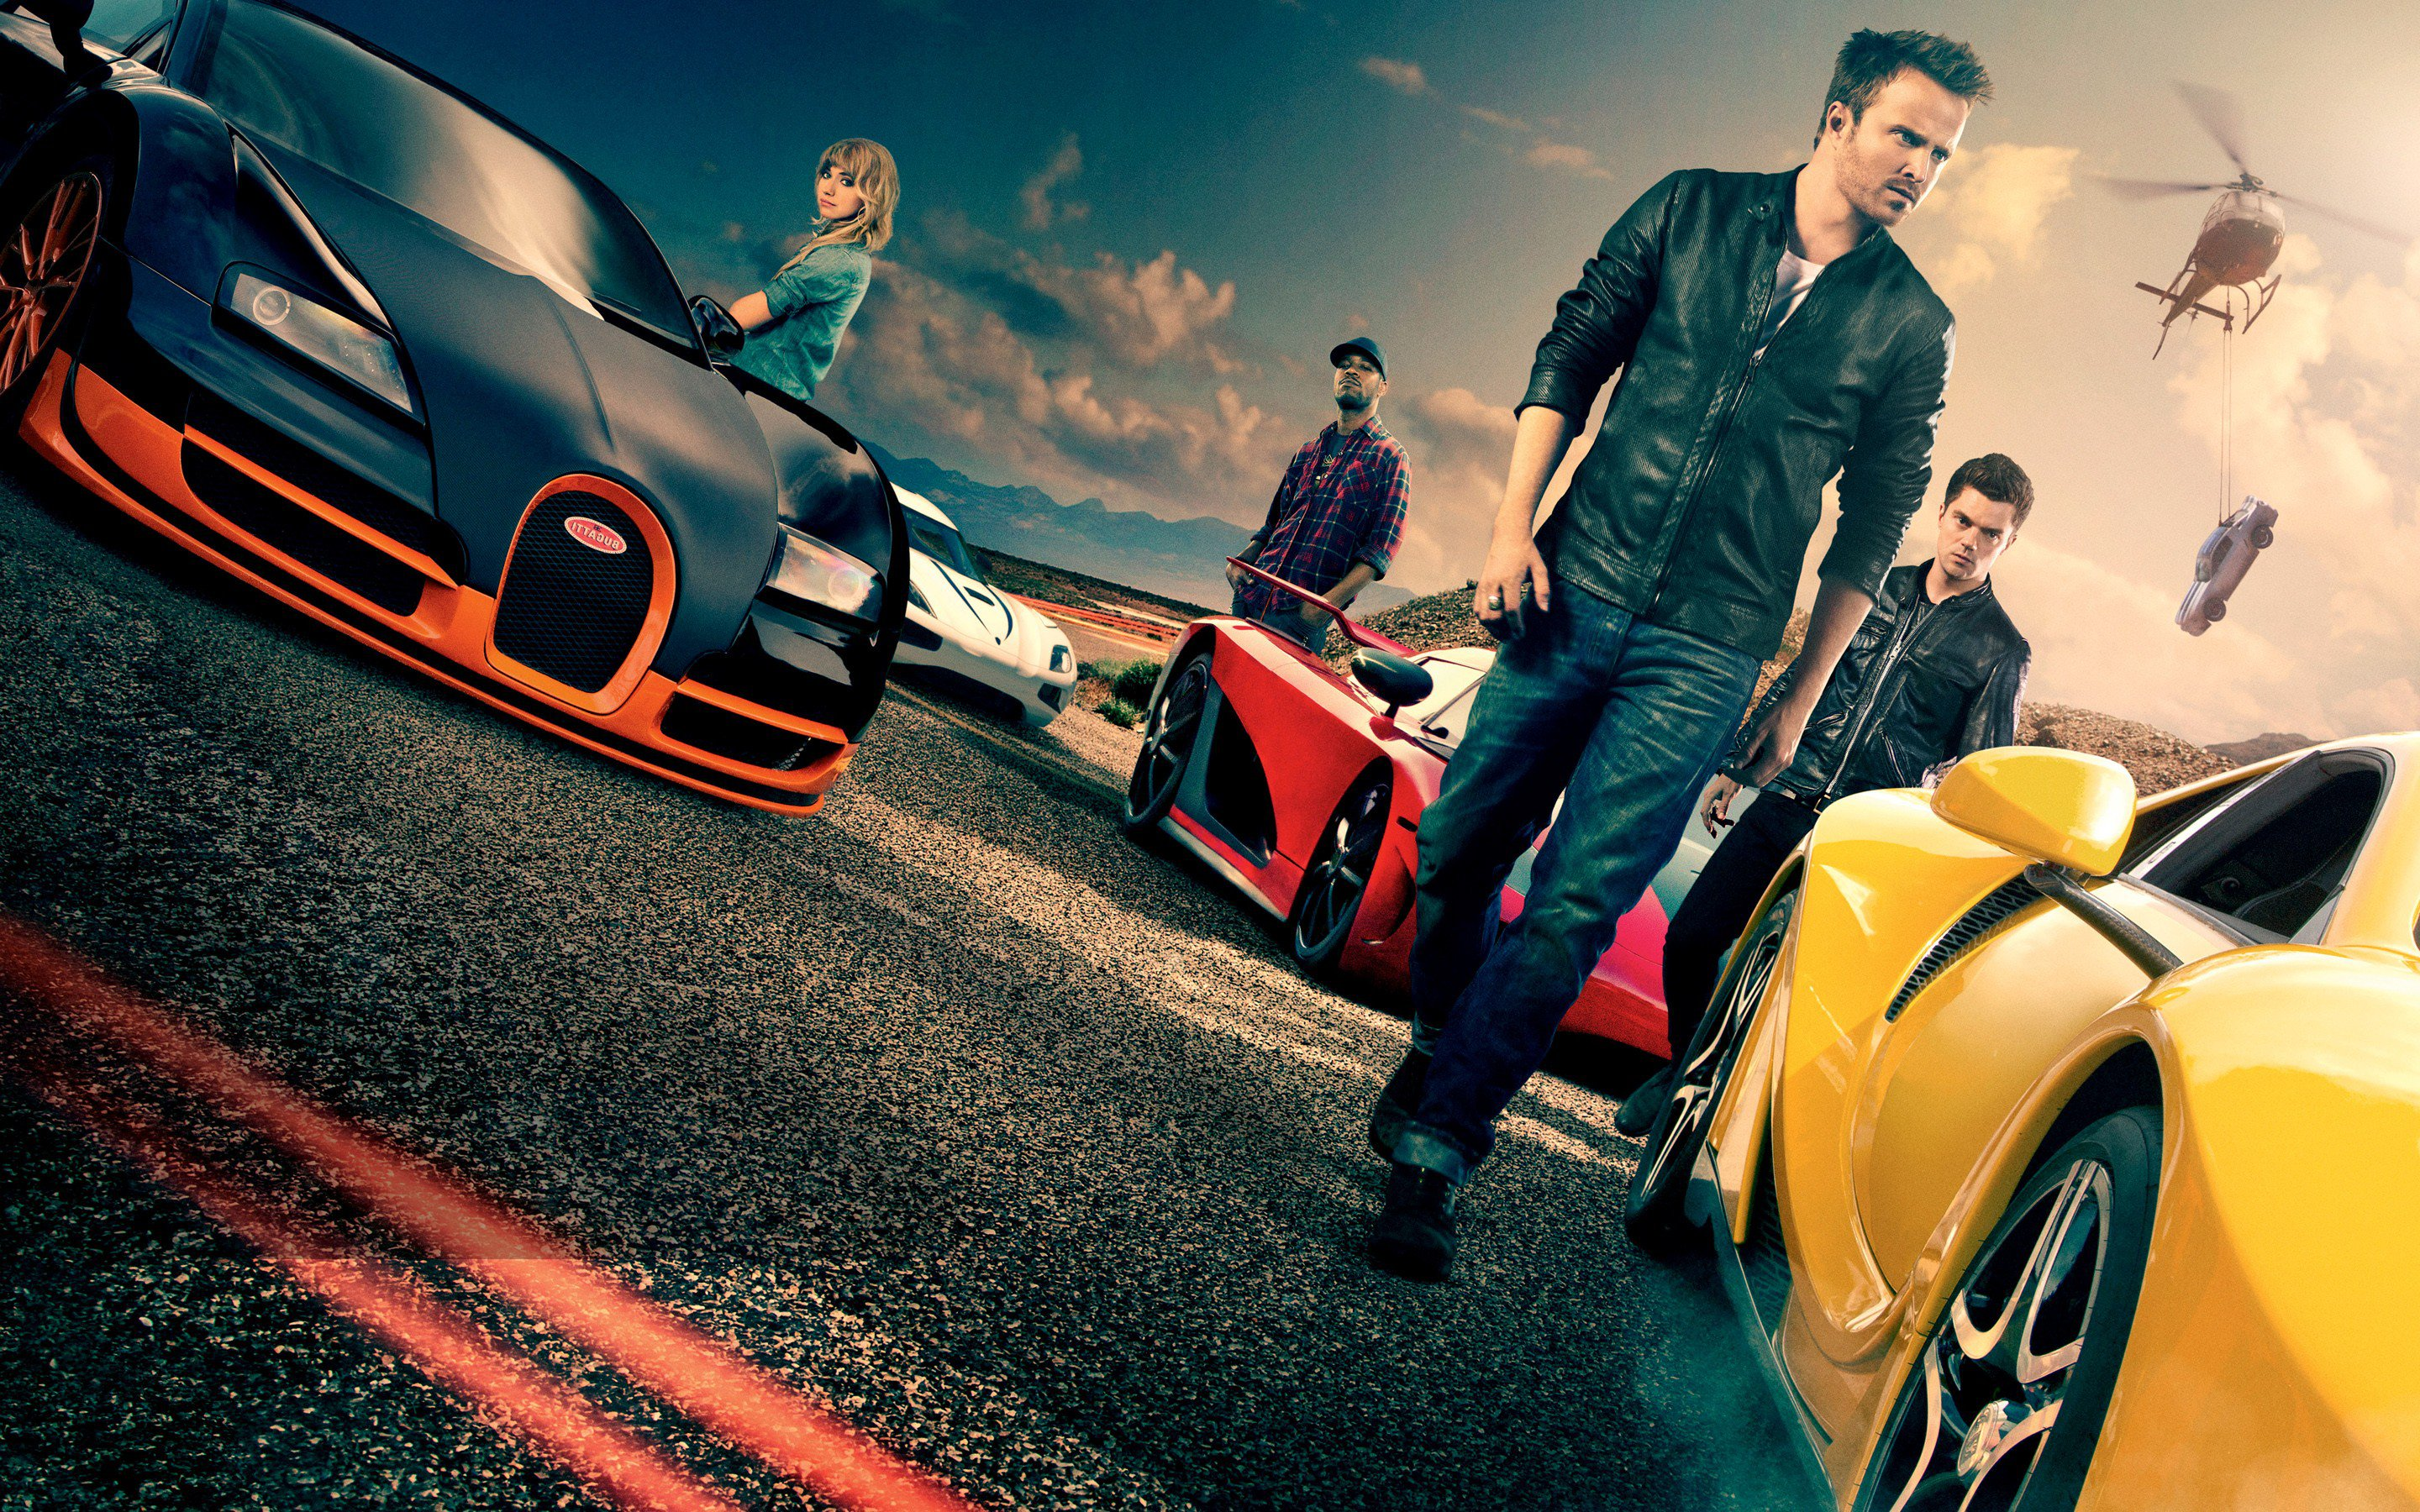 need for speed movie, hd movies, 4k wallpapers, images, backgrounds